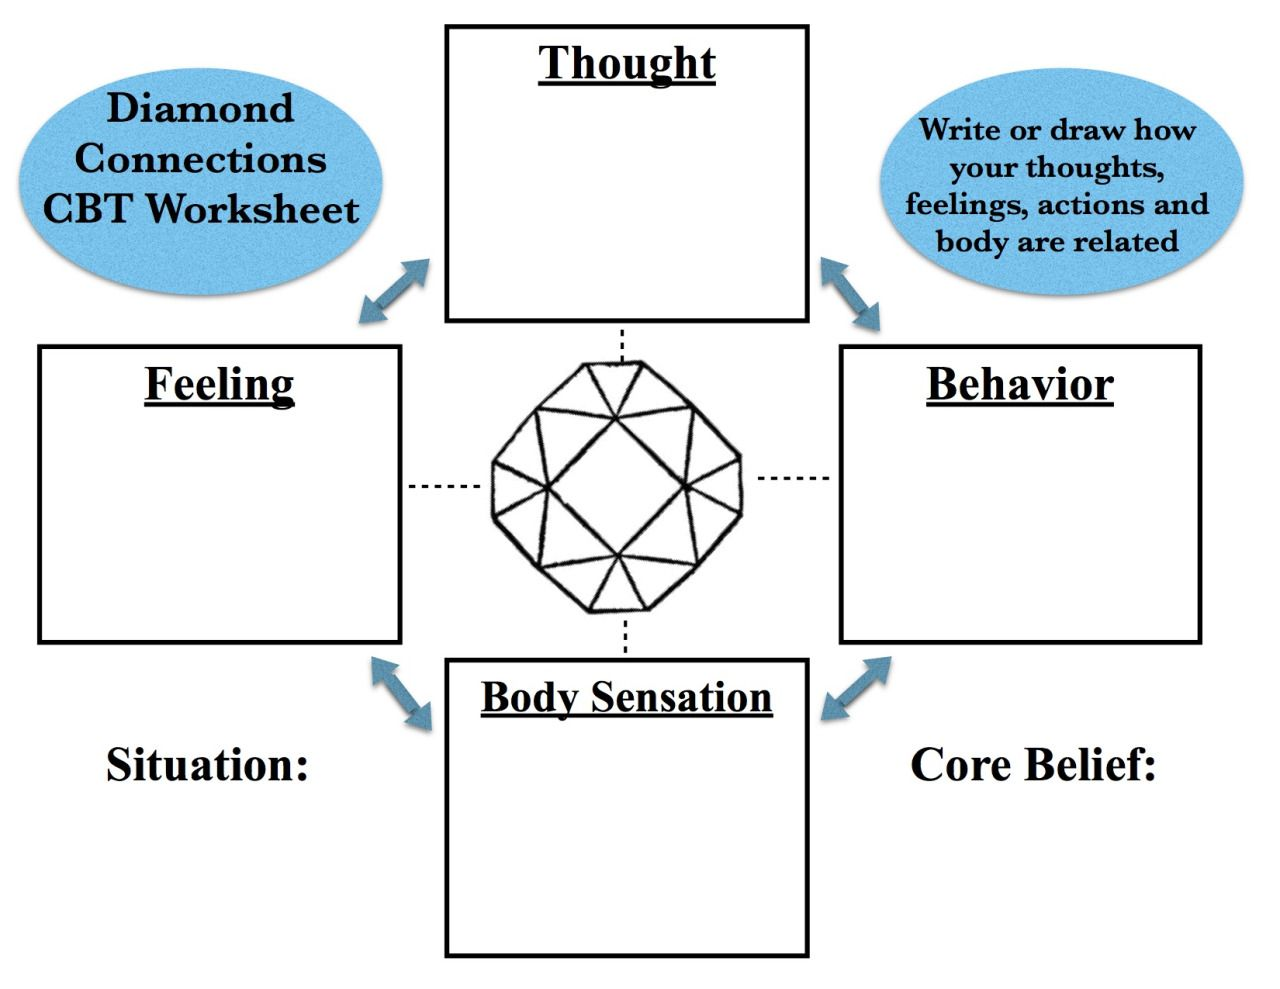 Cbt Diamond Connections Worksheet This Is Essentially A